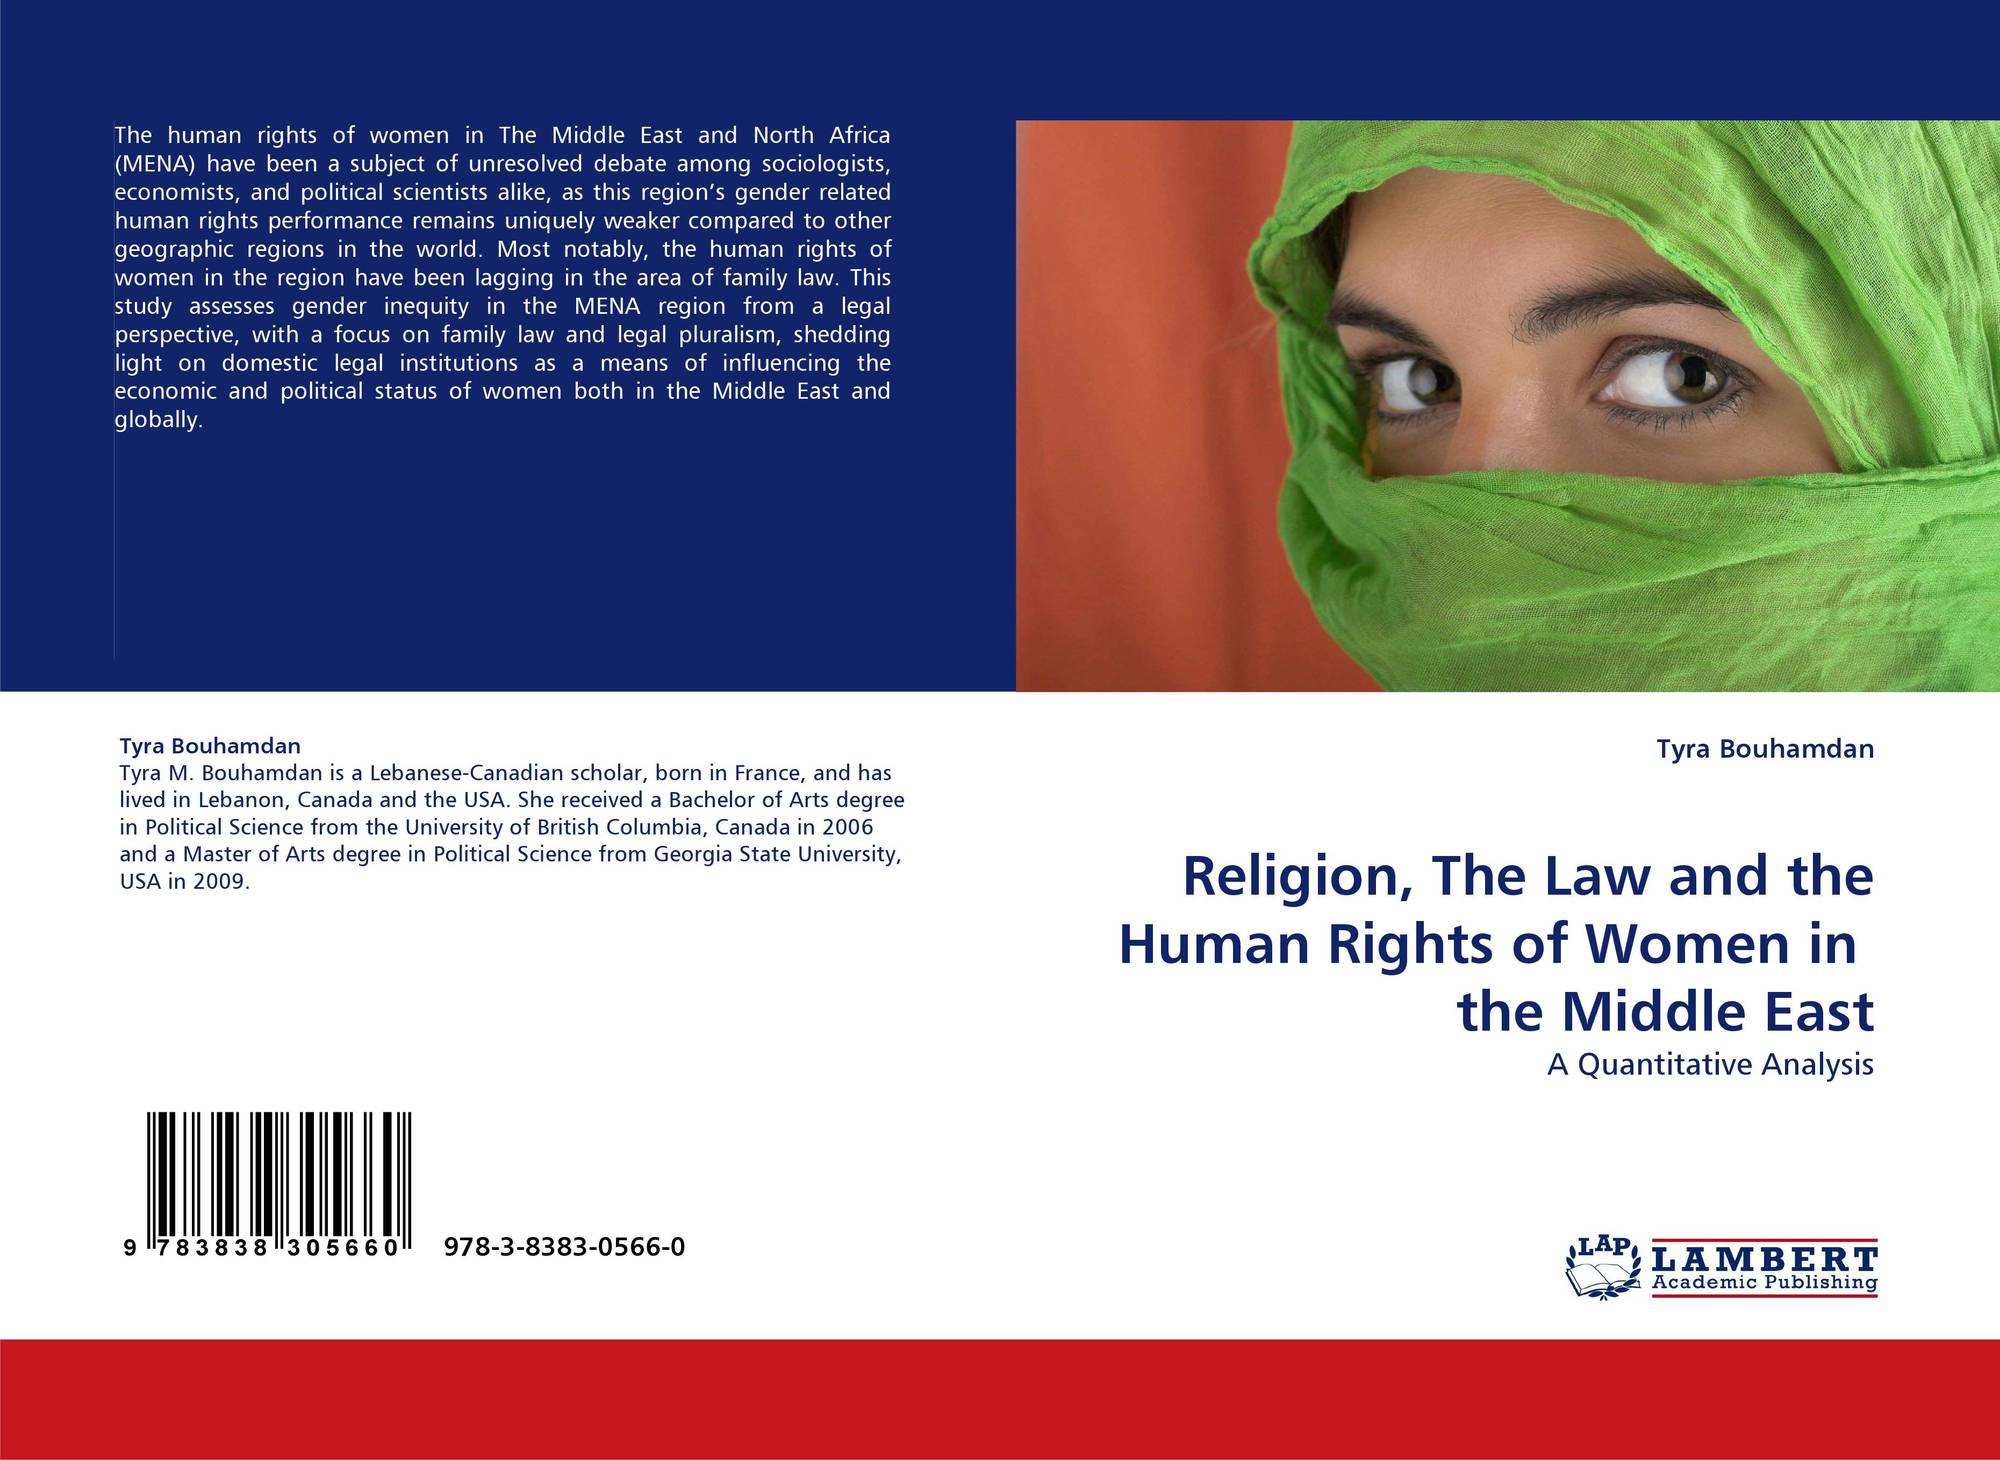 an analysis of women in law Elimination of violence against women (draft law) for its compliance with  in  this legal analysis, article 19 provides recommendations for bringing the draft .